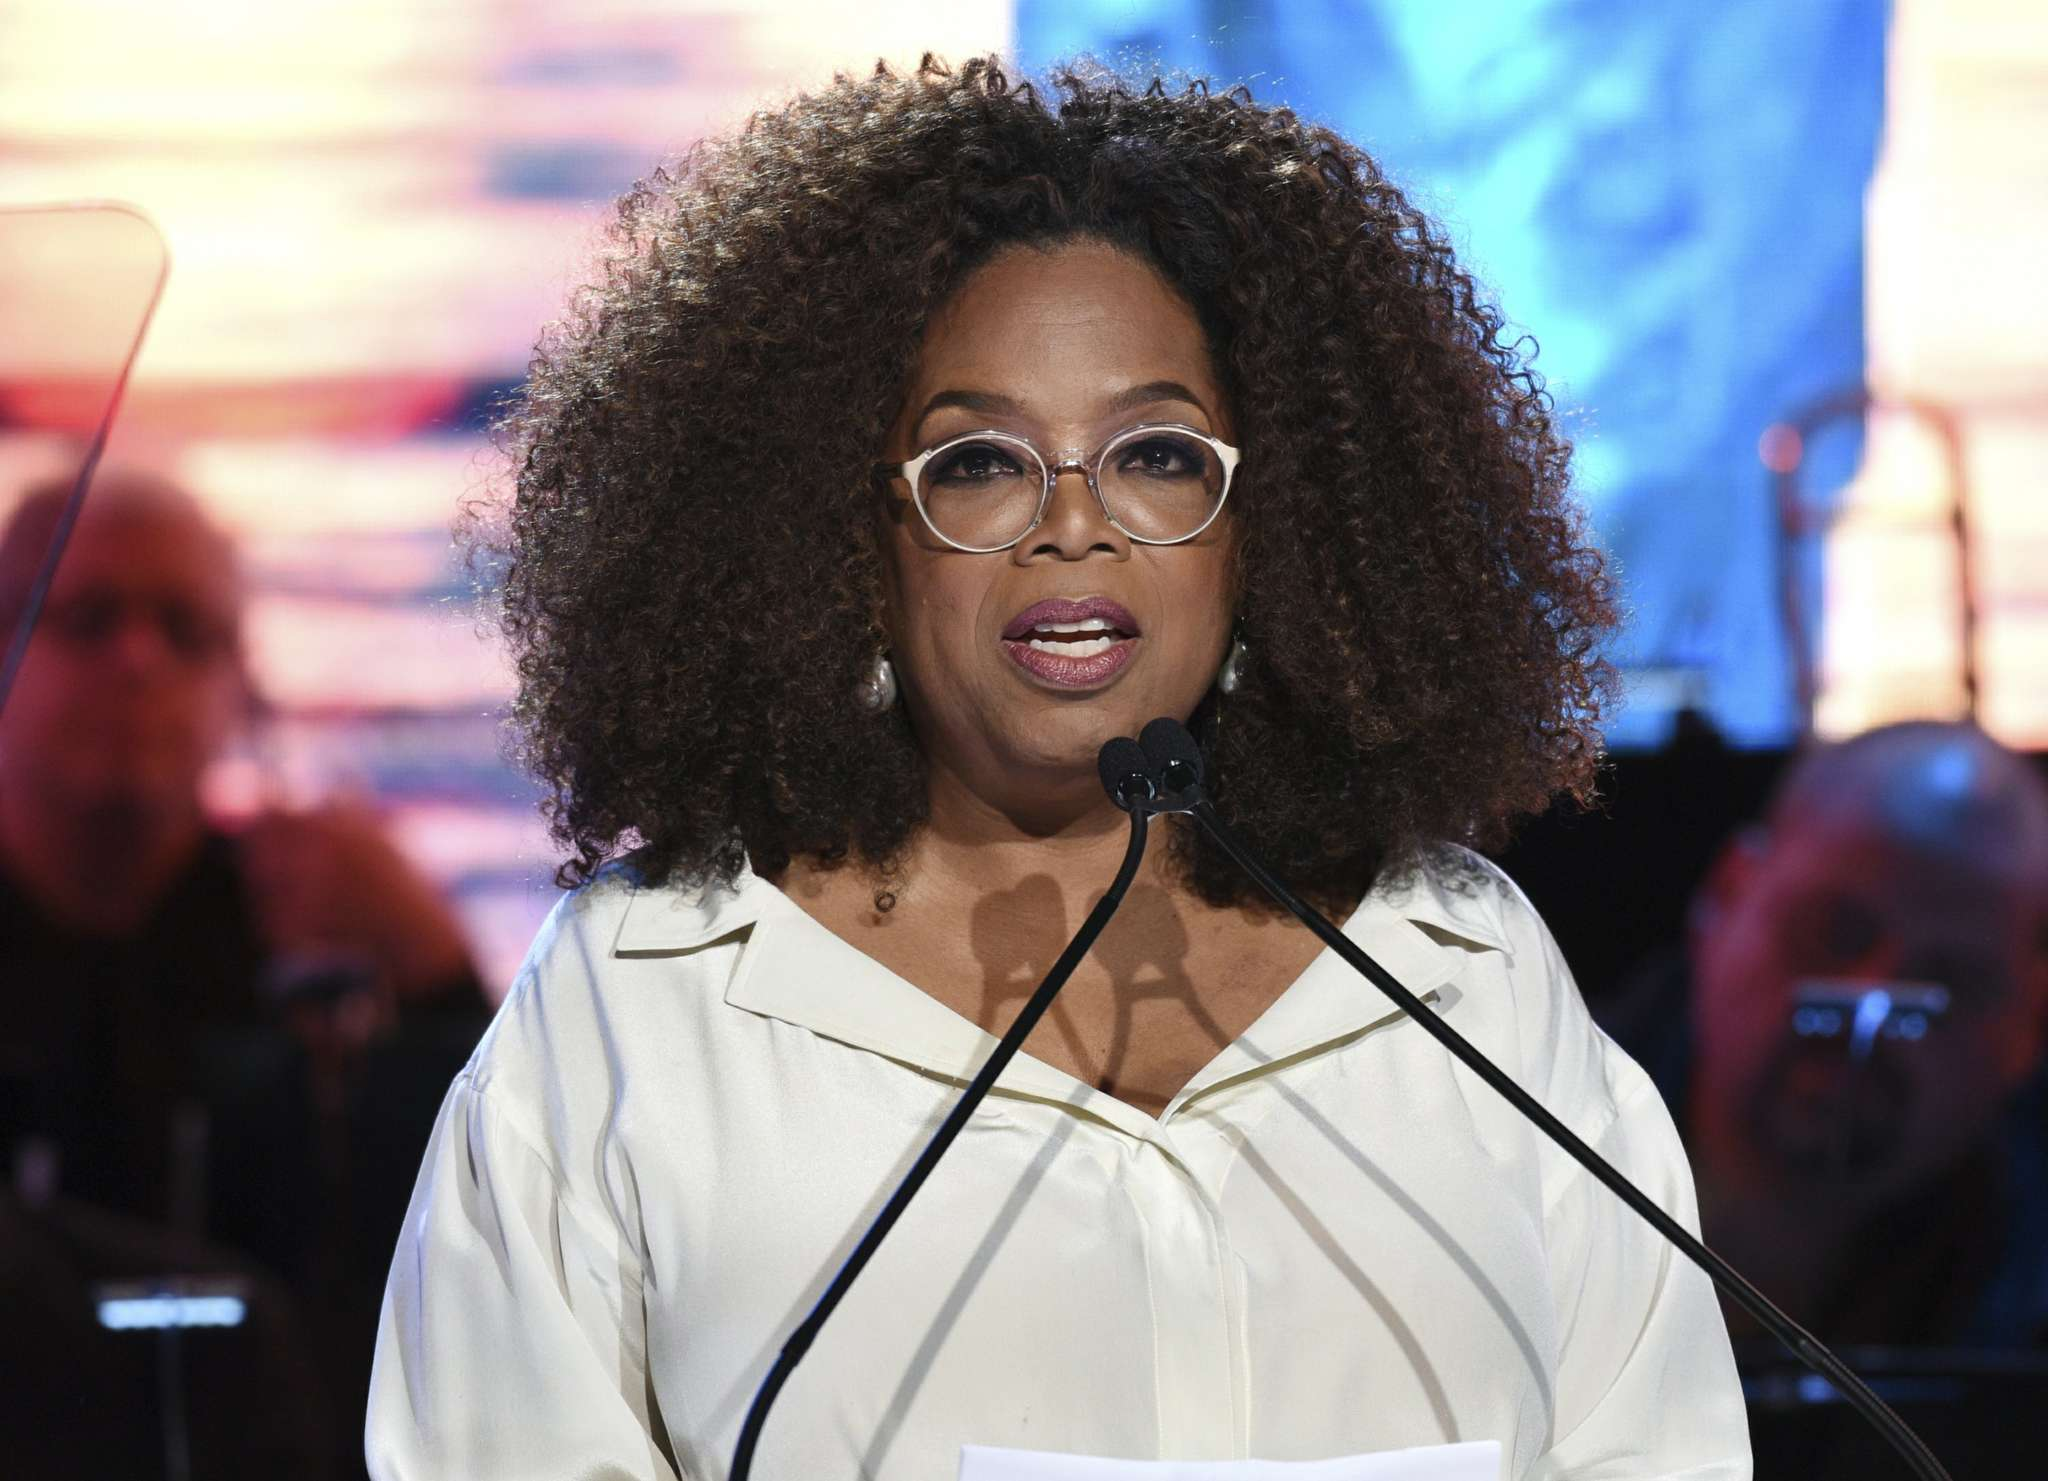 Oprah falls on stage during a speaking event in LA